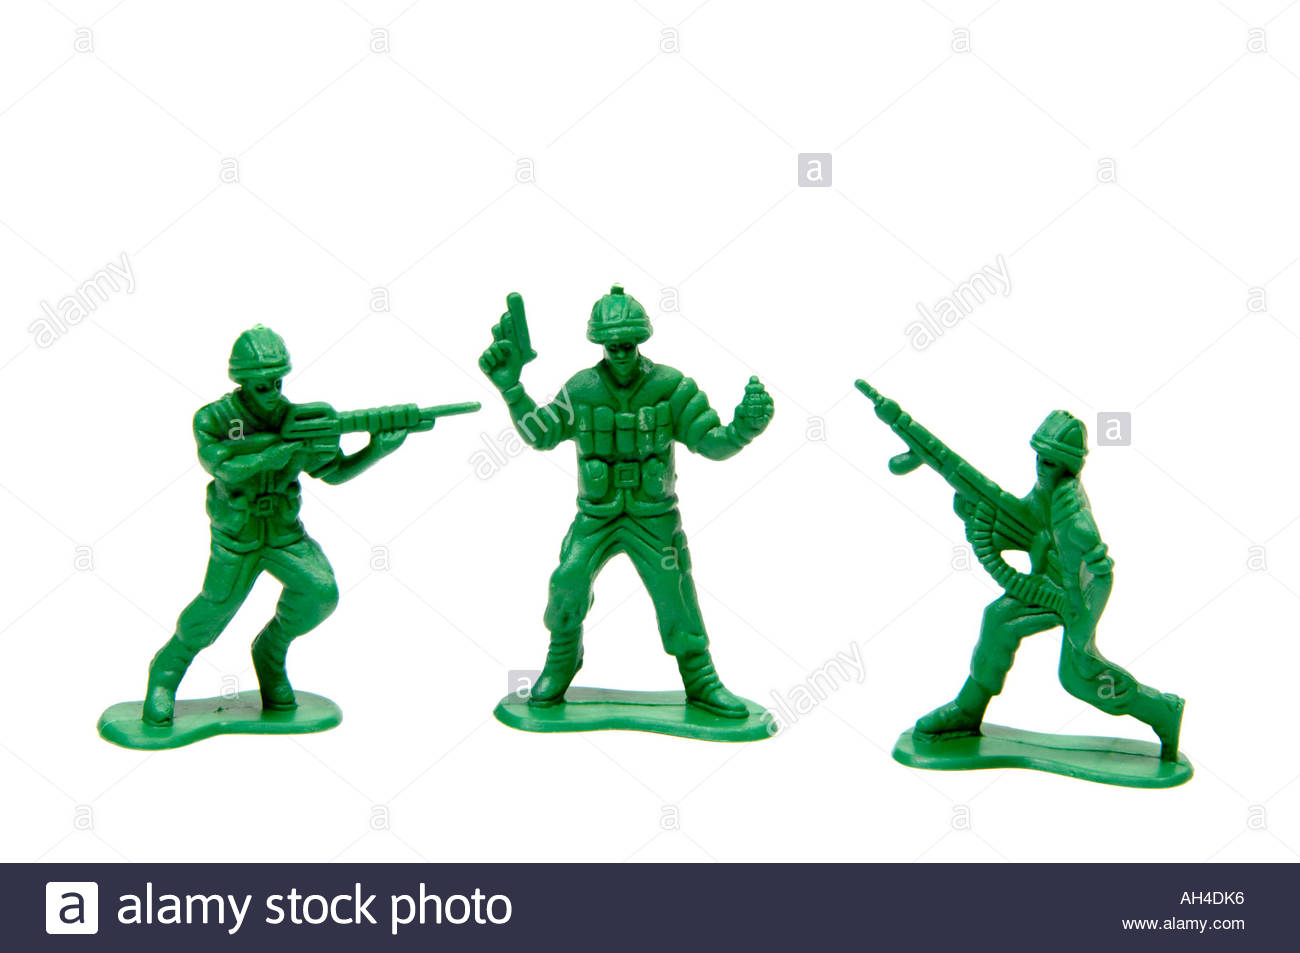 1300x953 Green Plastic Toy Soldiers Stock Photo 8202741